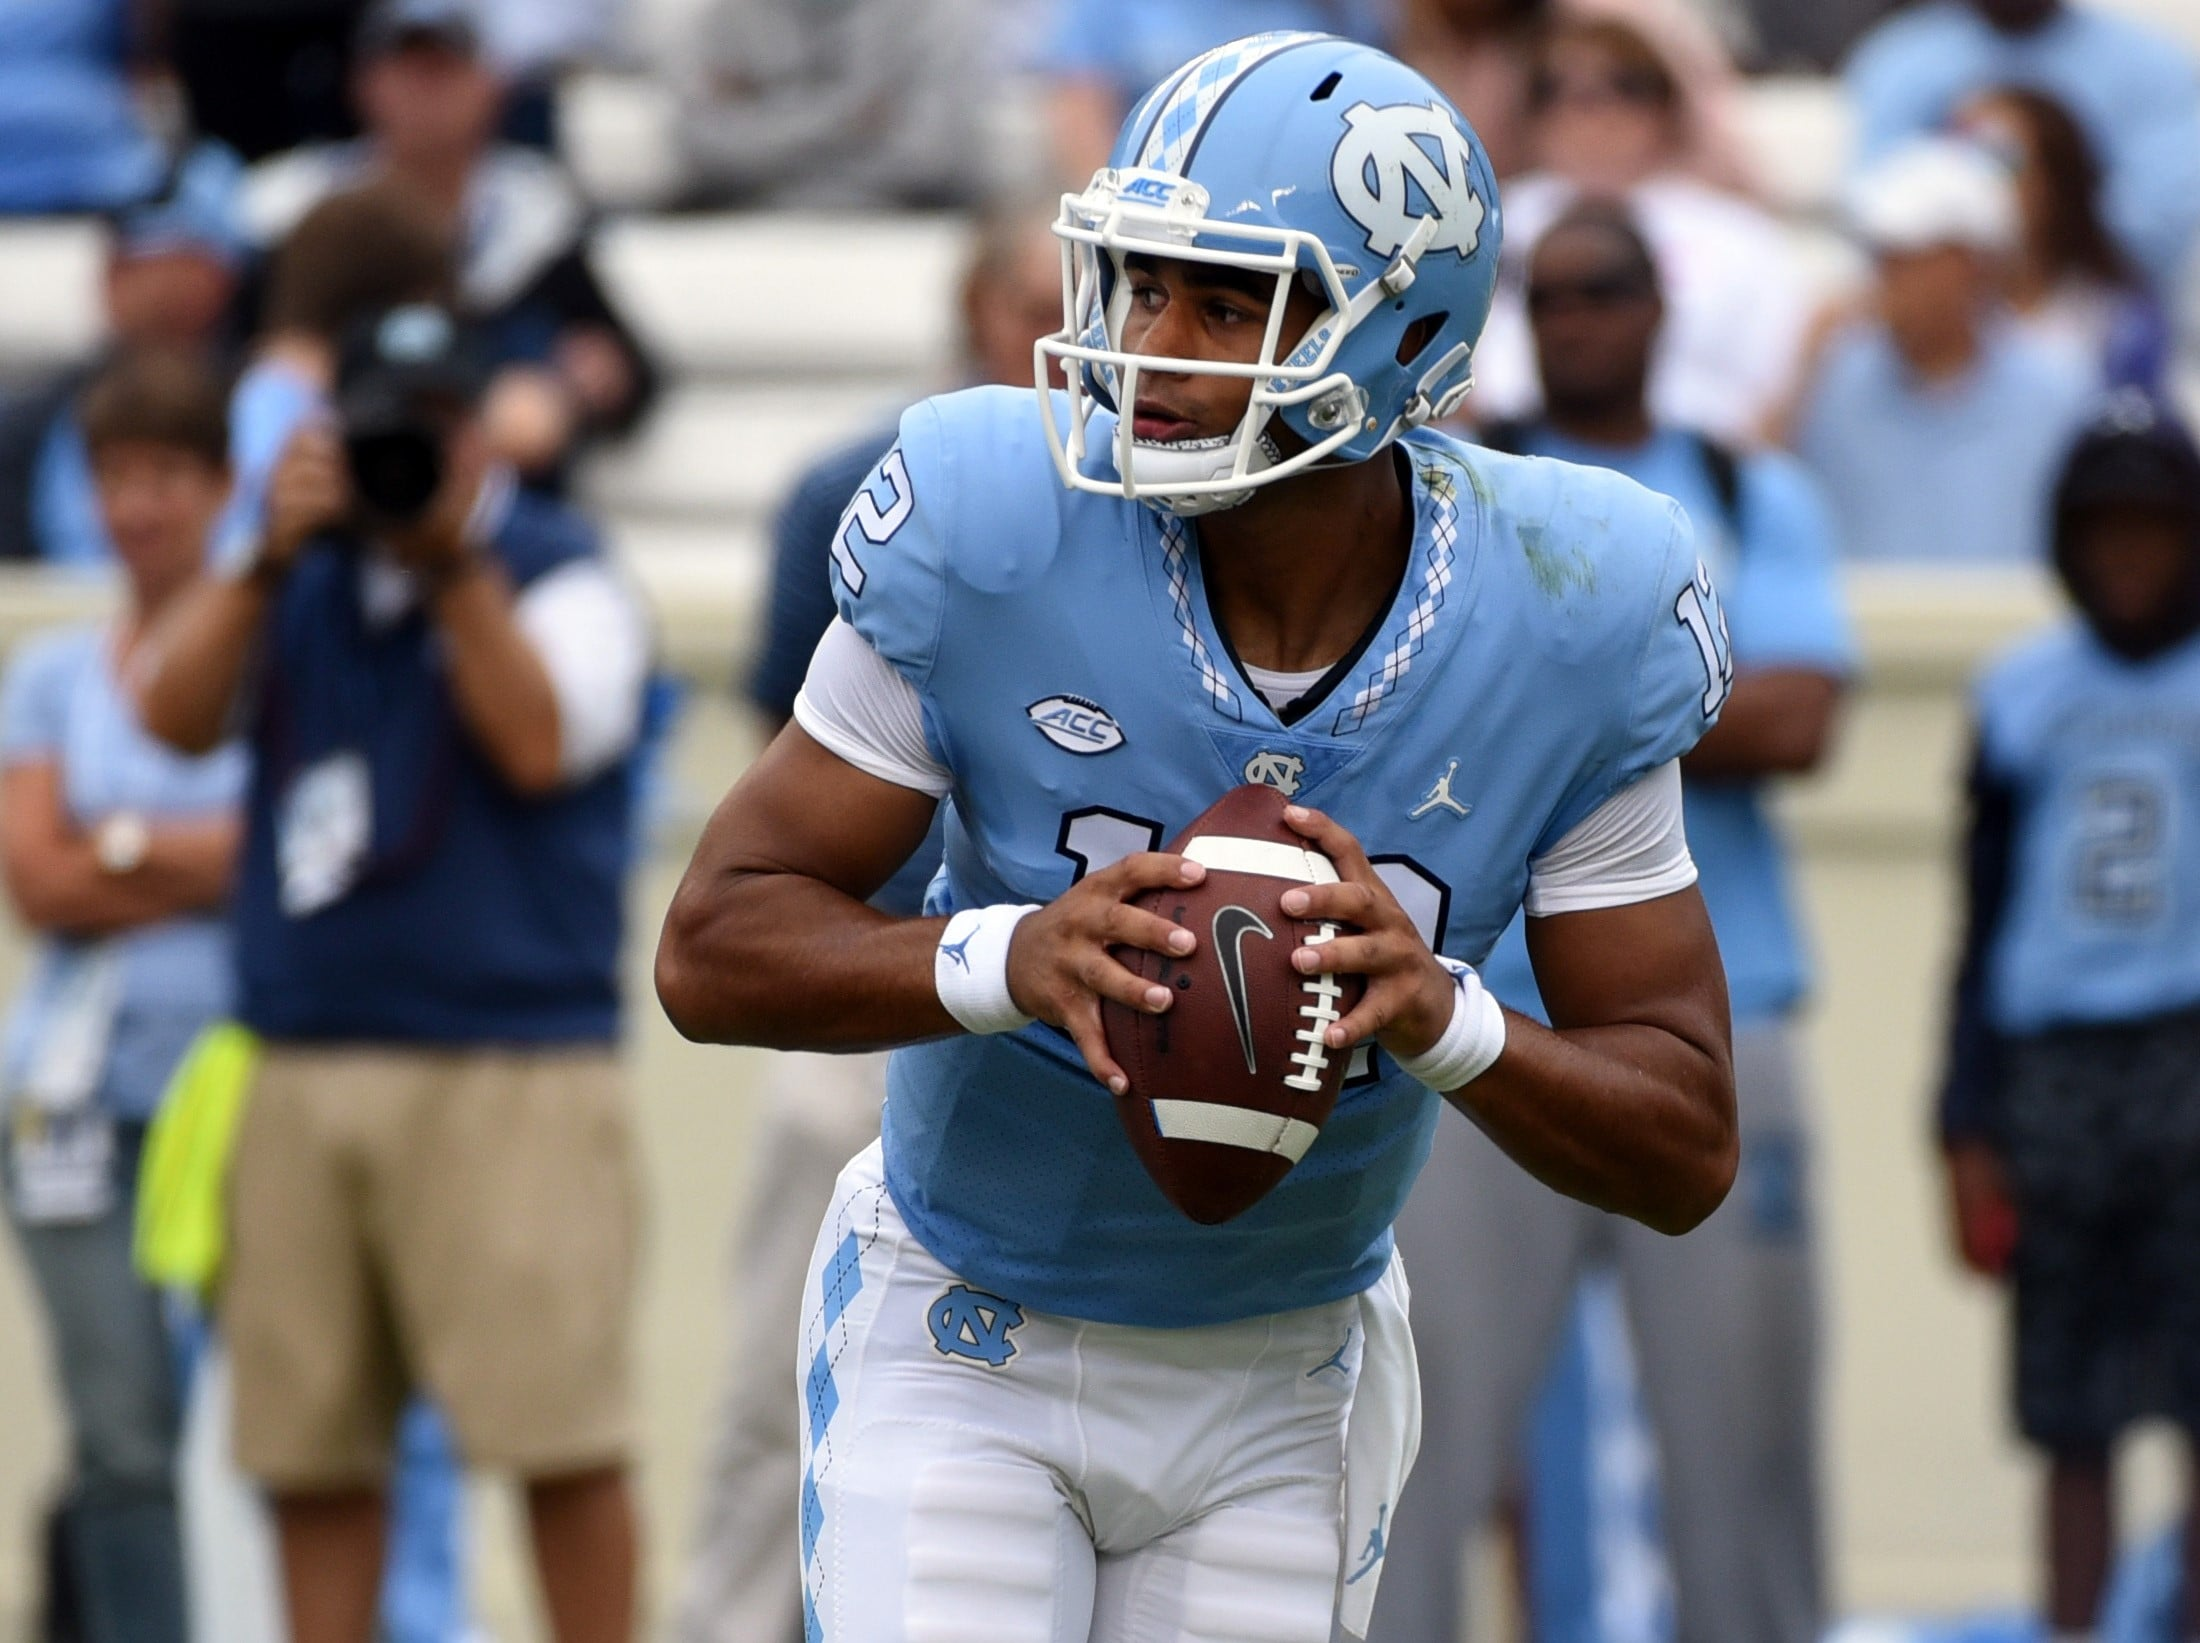 UNC goes with LSU graduate transfer Harris at QB vs. Cal